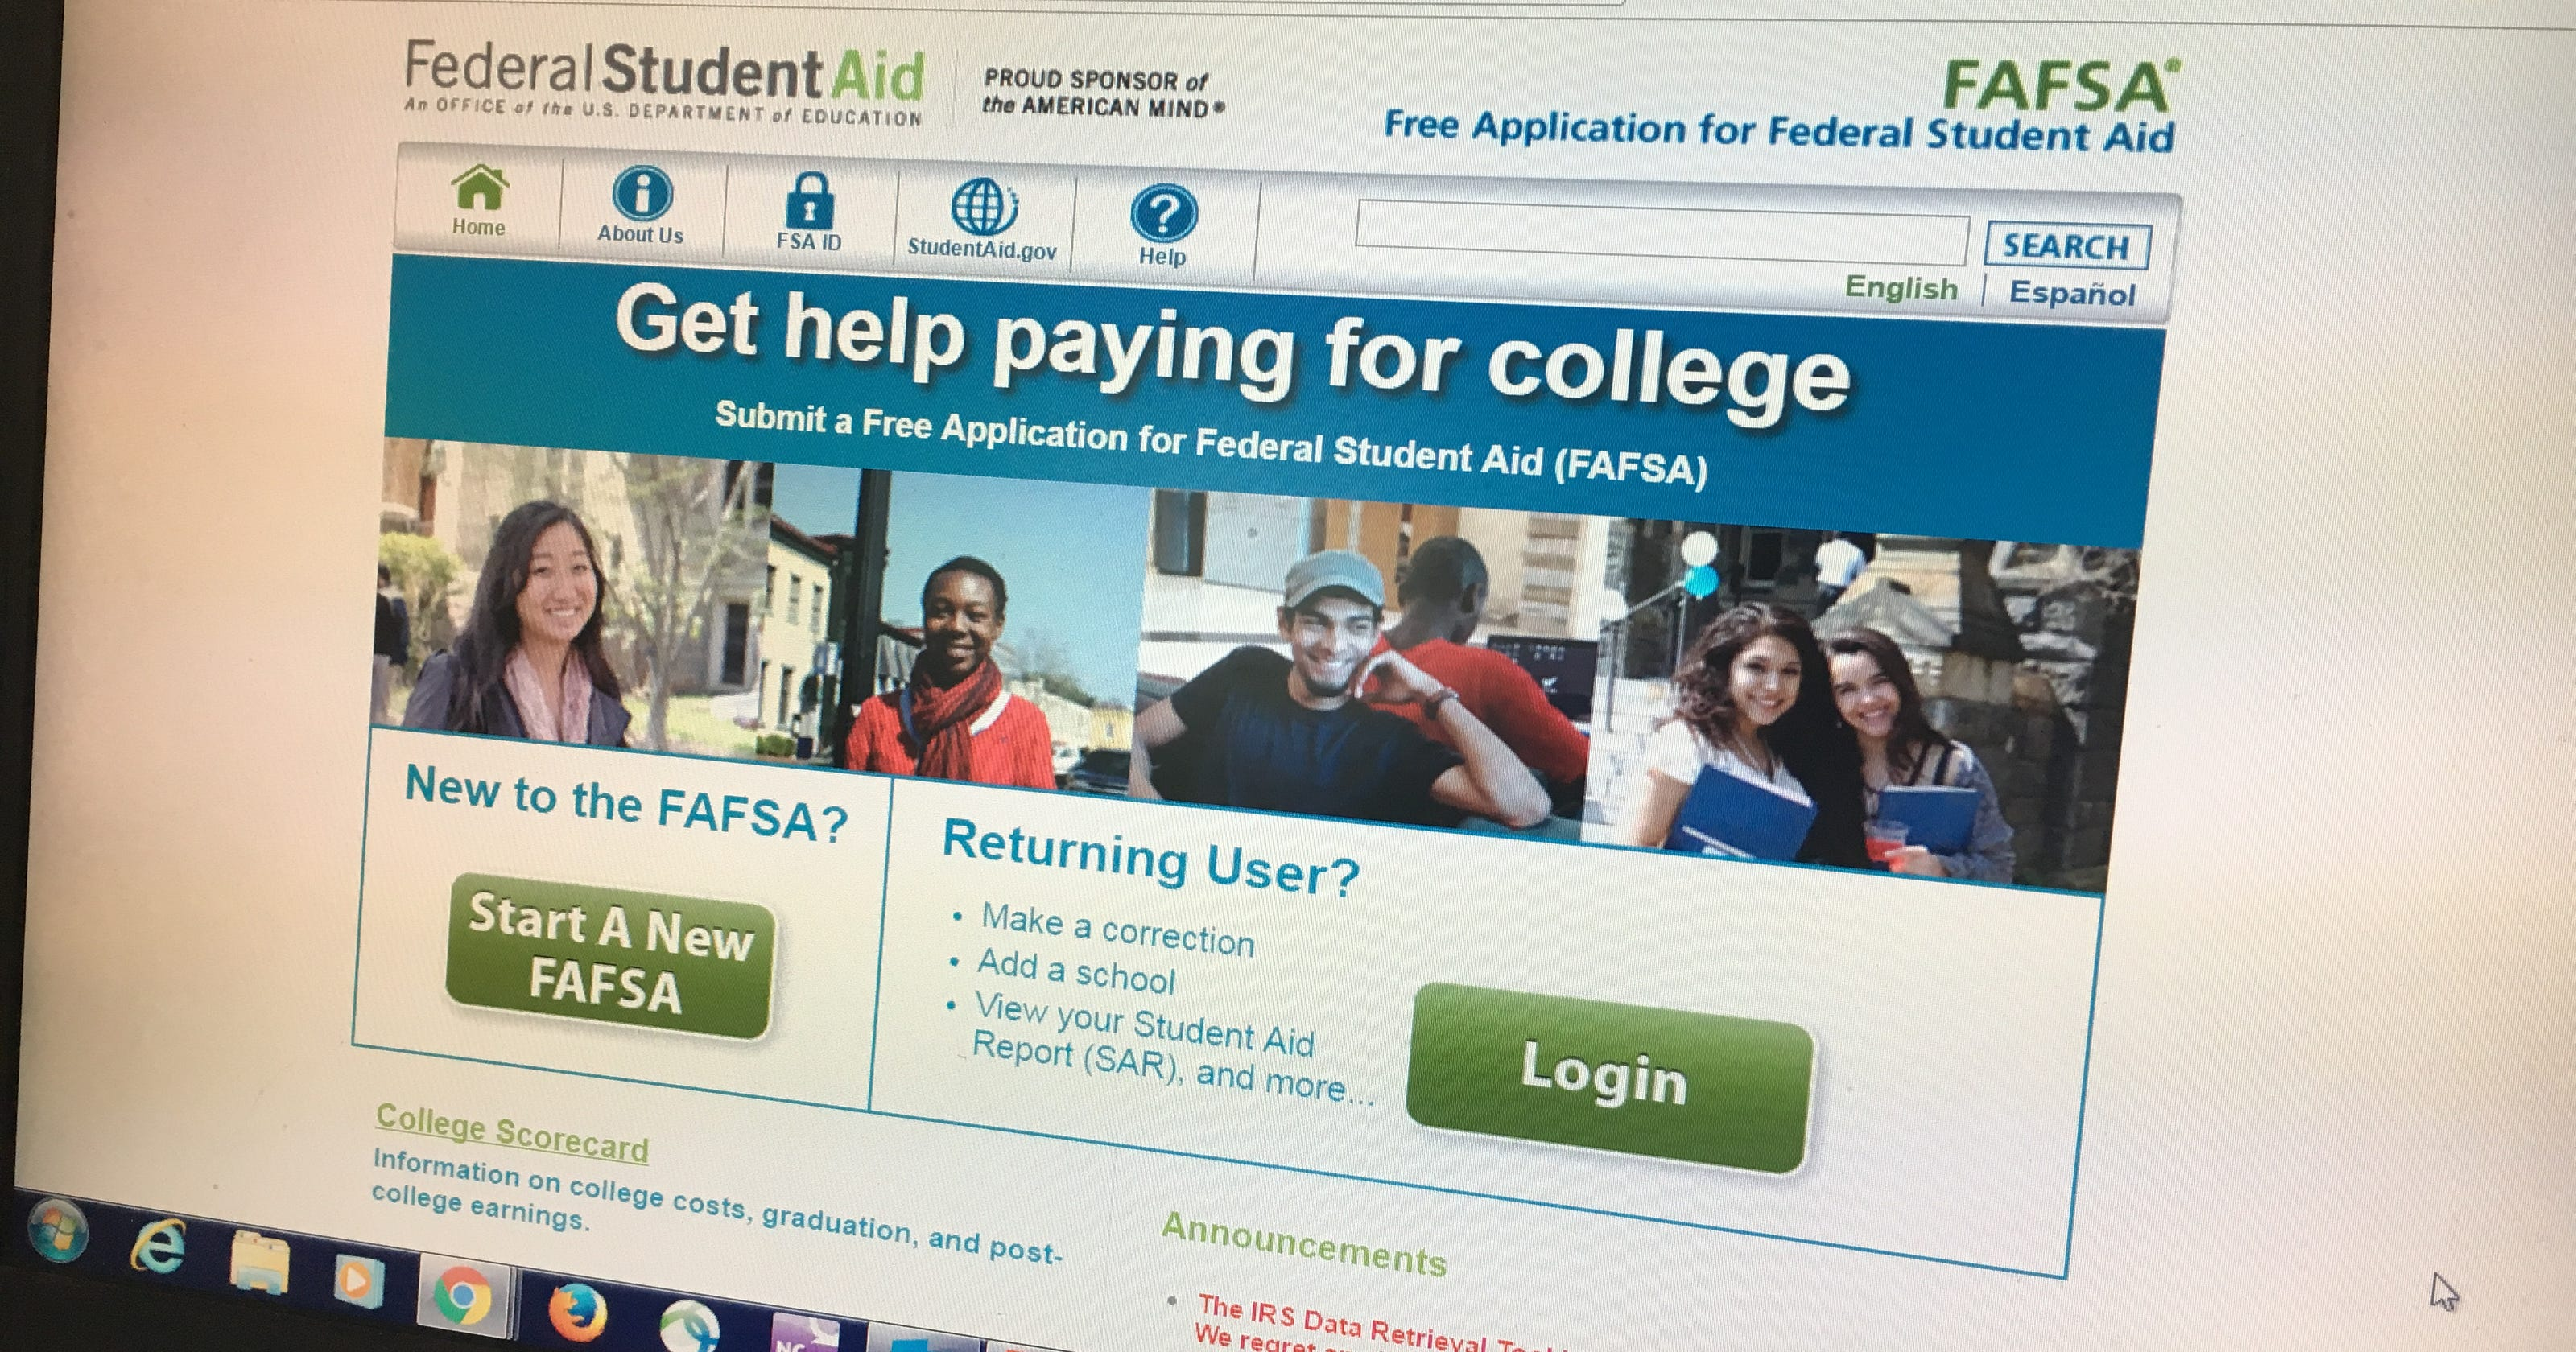 Can't import your taxes? File your FAFSA forms anyway